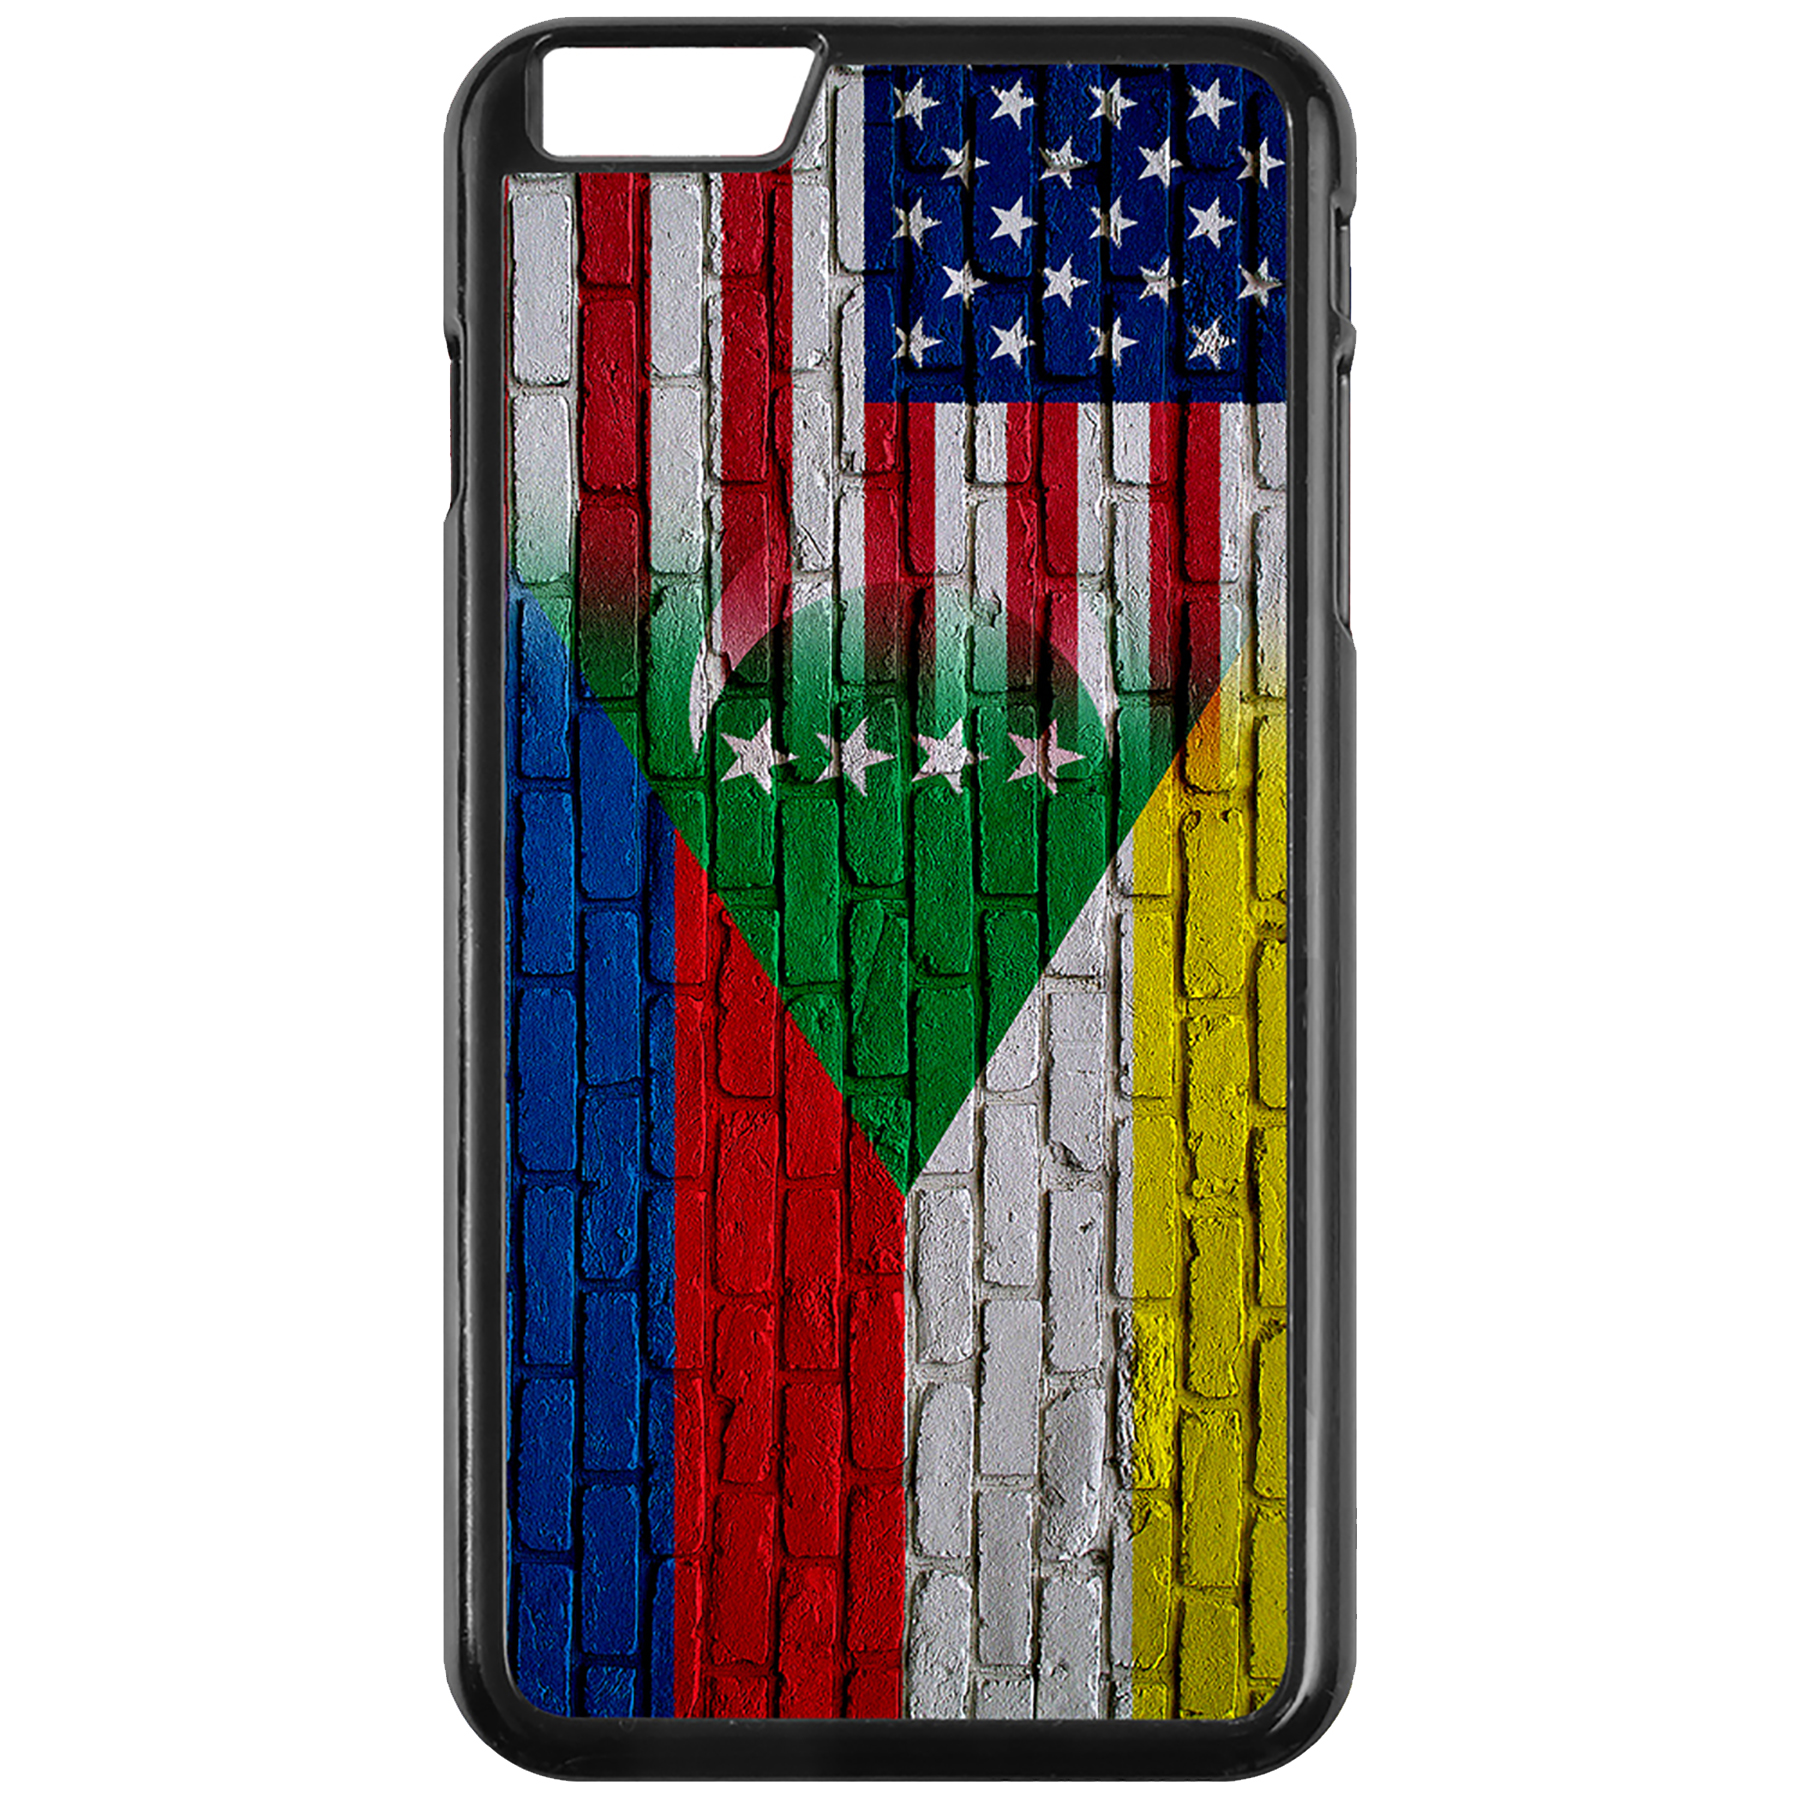 Apple-iPhone-Case-with-Flag-of-Comoros-Comorian-Many-Design-Options thumbnail 65